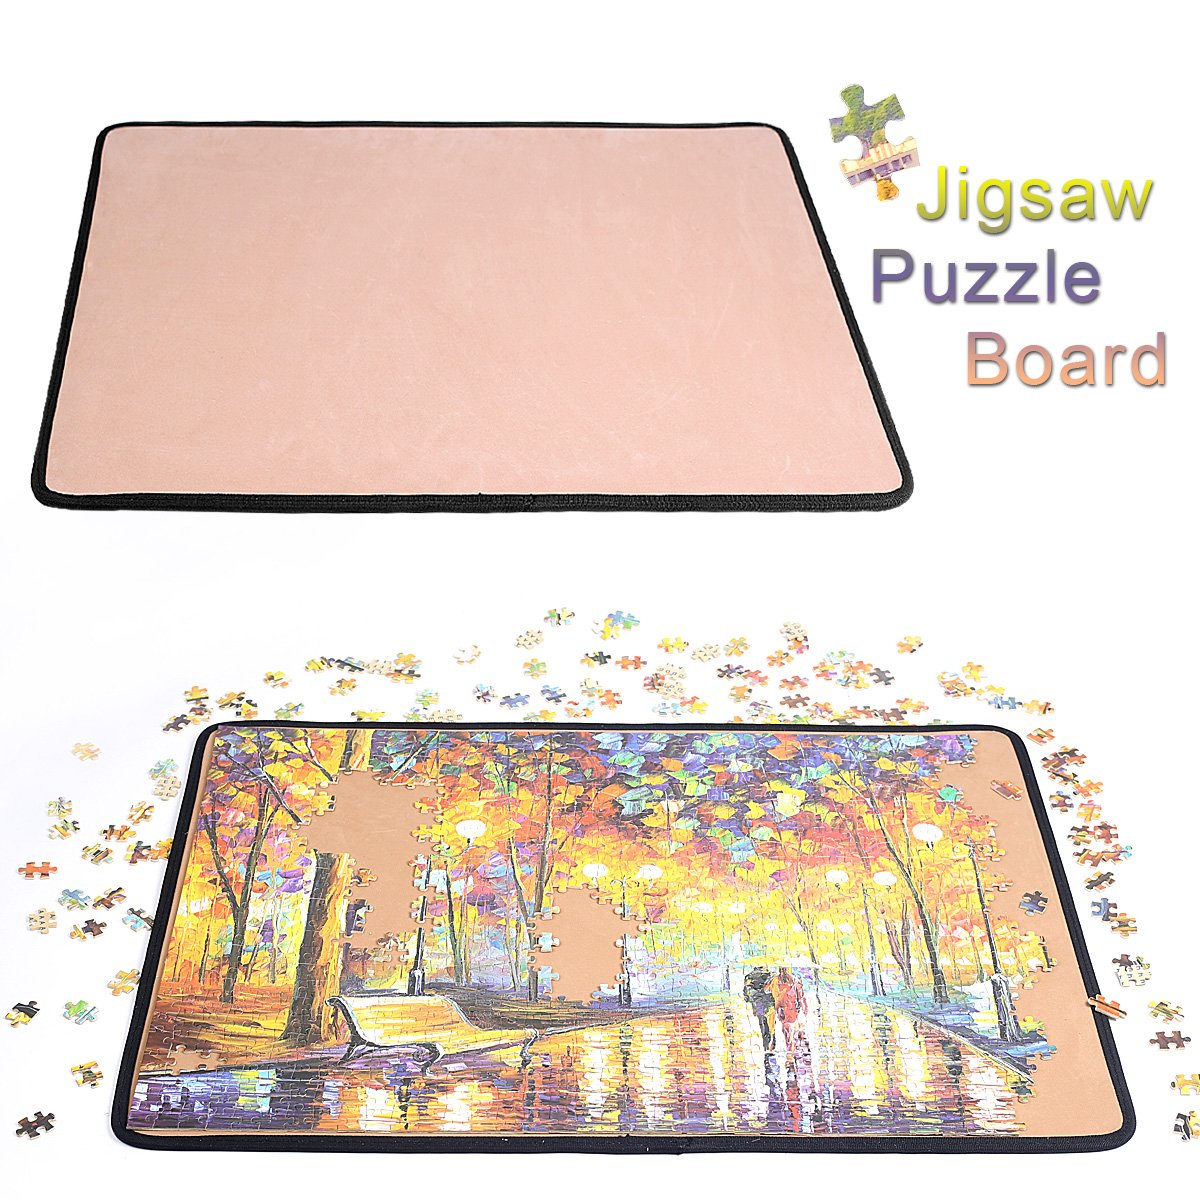 Jigsaw Puzzle Board Puzzle Mat- Ingooood Easy Move Storage Jigsaw Puzzle mat Work Separate Puzzle Board for up to 1,000 Pieces Durable jigboard by Ingooood